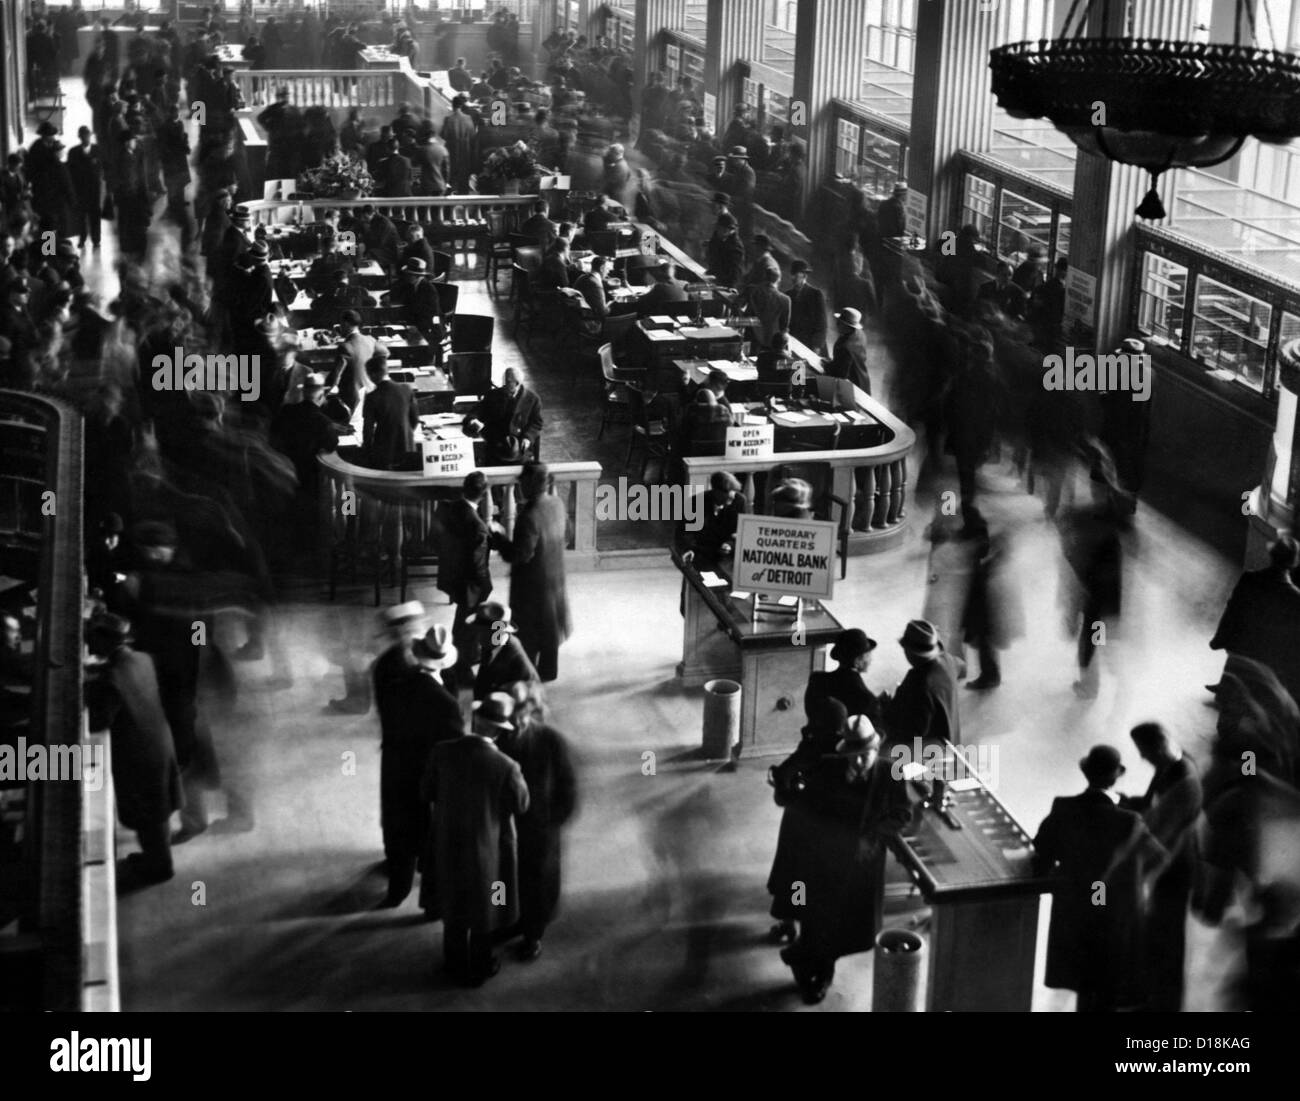 Crowds in the lobby of new bank in Detroit. New National Bank opened in Detroit, formed by capital subscribed by - Stock Image